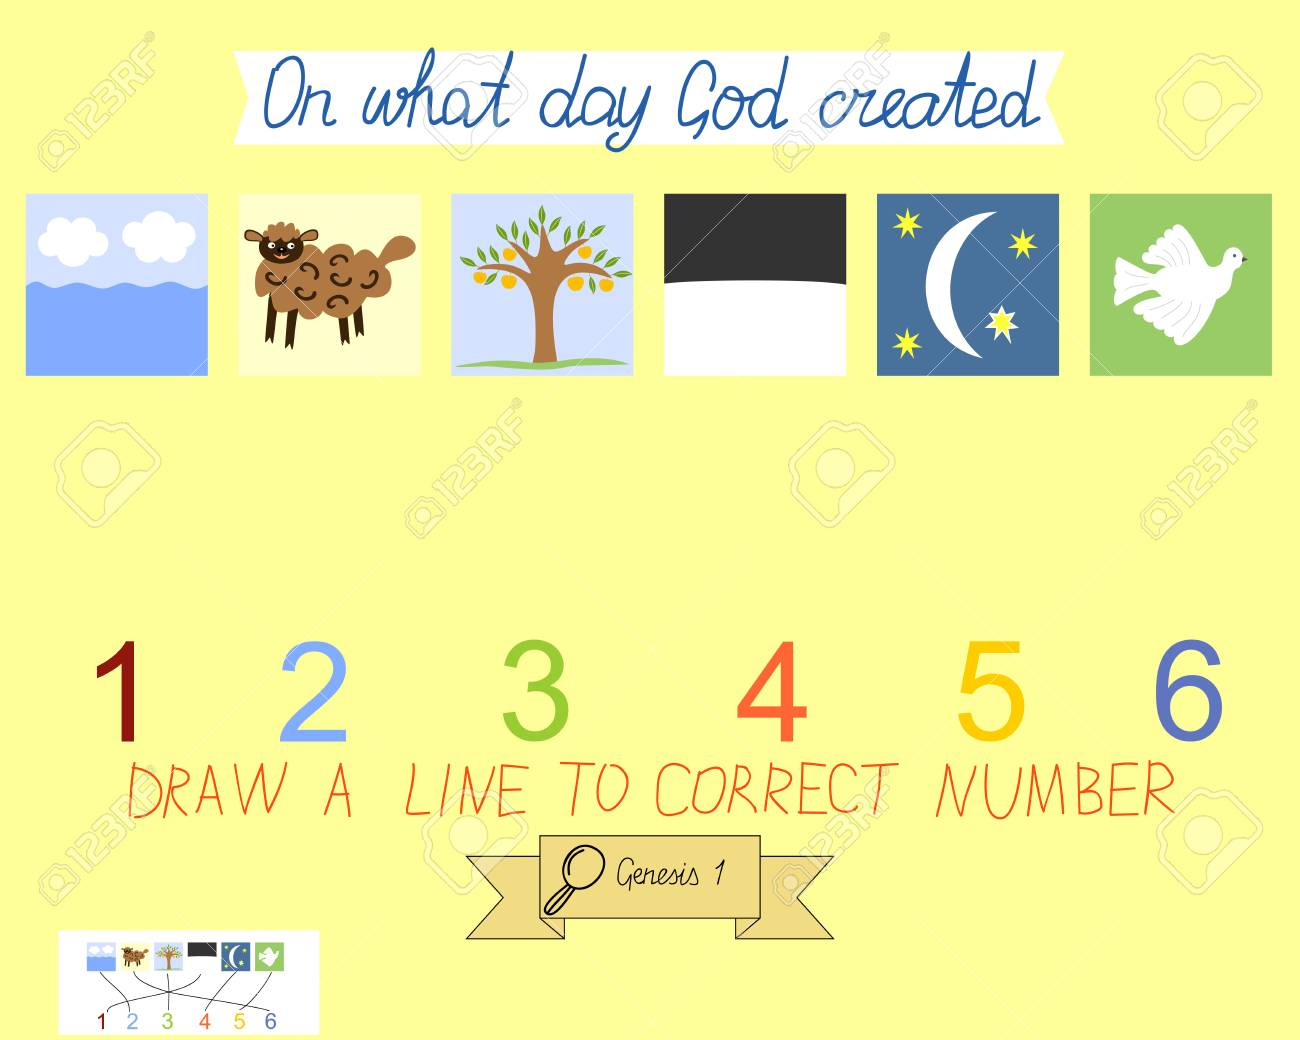 Task For Children How To Place Days Of Creation Book Of Genesis Creation Of